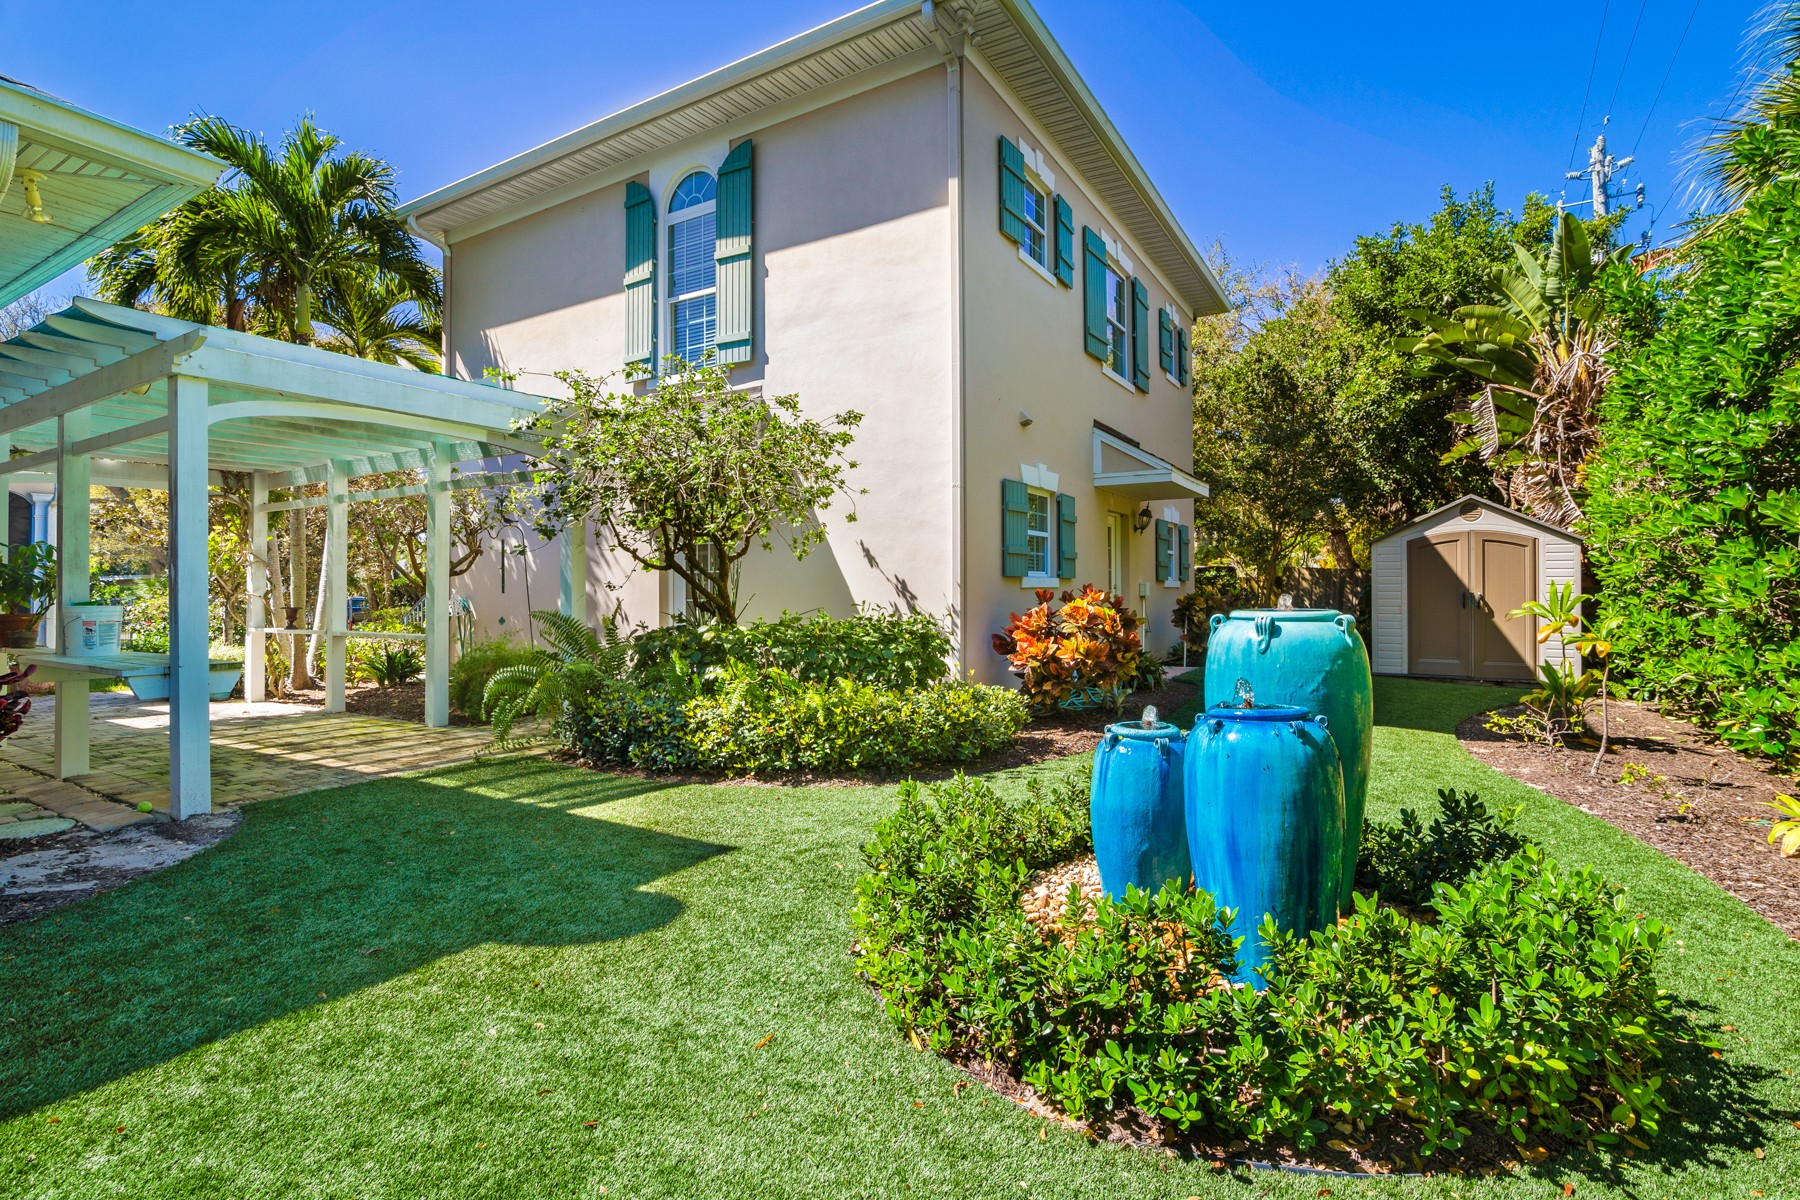 Additional photo for property listing at GATED CENTRAL BEACH HOME WITH GUEST APARTMENT 745 Azalea Lane Vero Beach, Florida 32963 United States